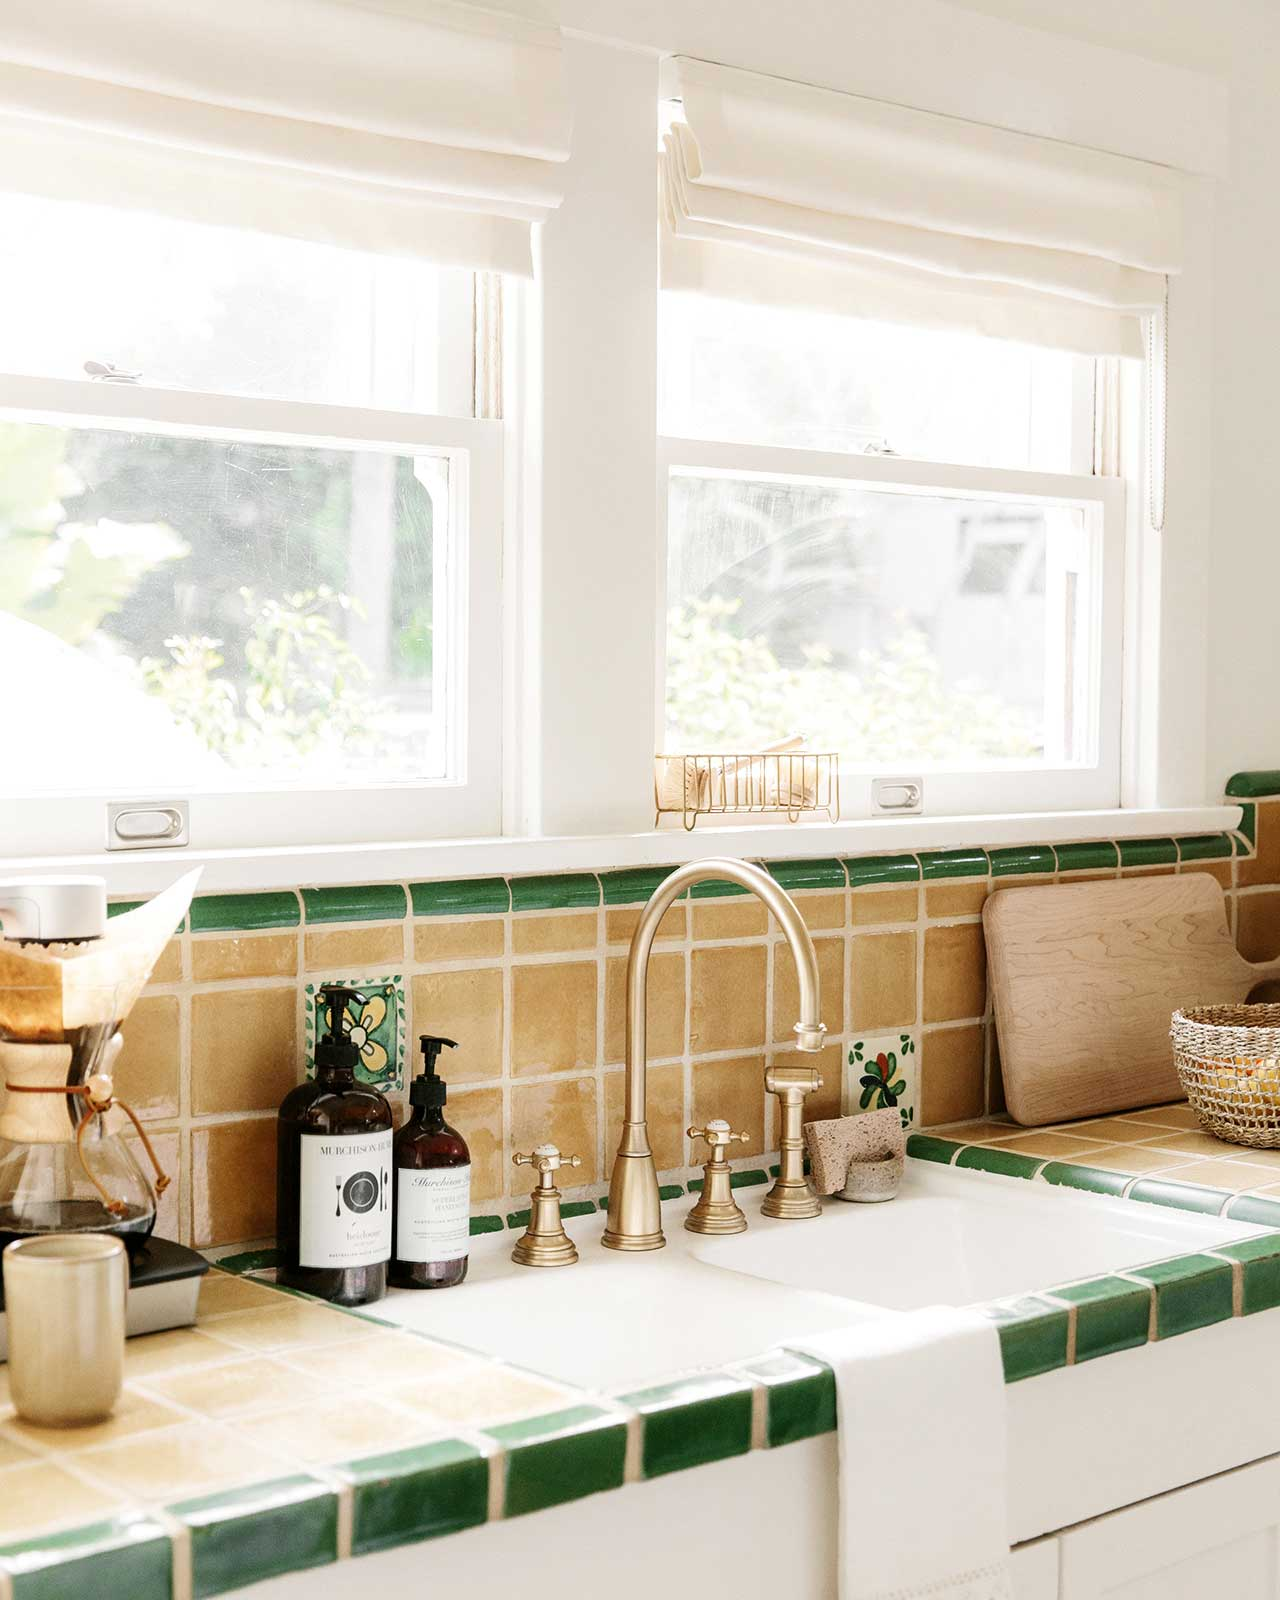 Tour inside a light & airy beach bungalow painted in whipped - the perfect warm white from Clare